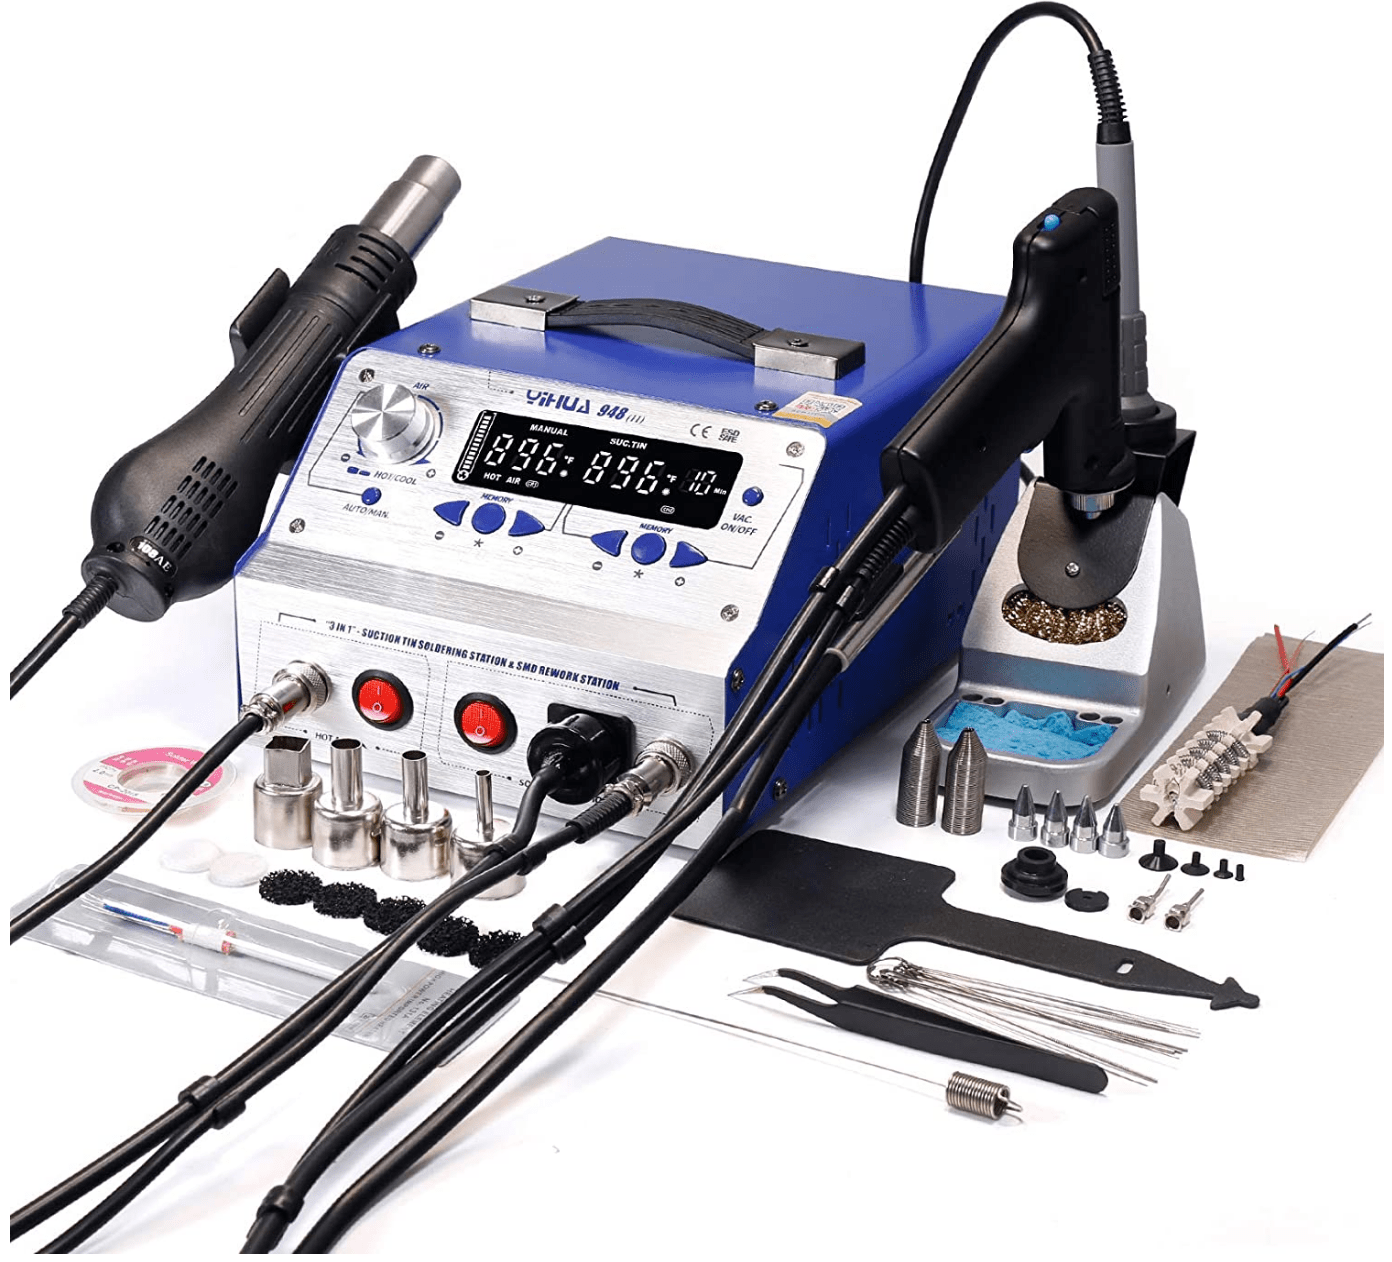 Details about  / 968A Professional SMD Digital Hot Air Rework Station with a Rework station